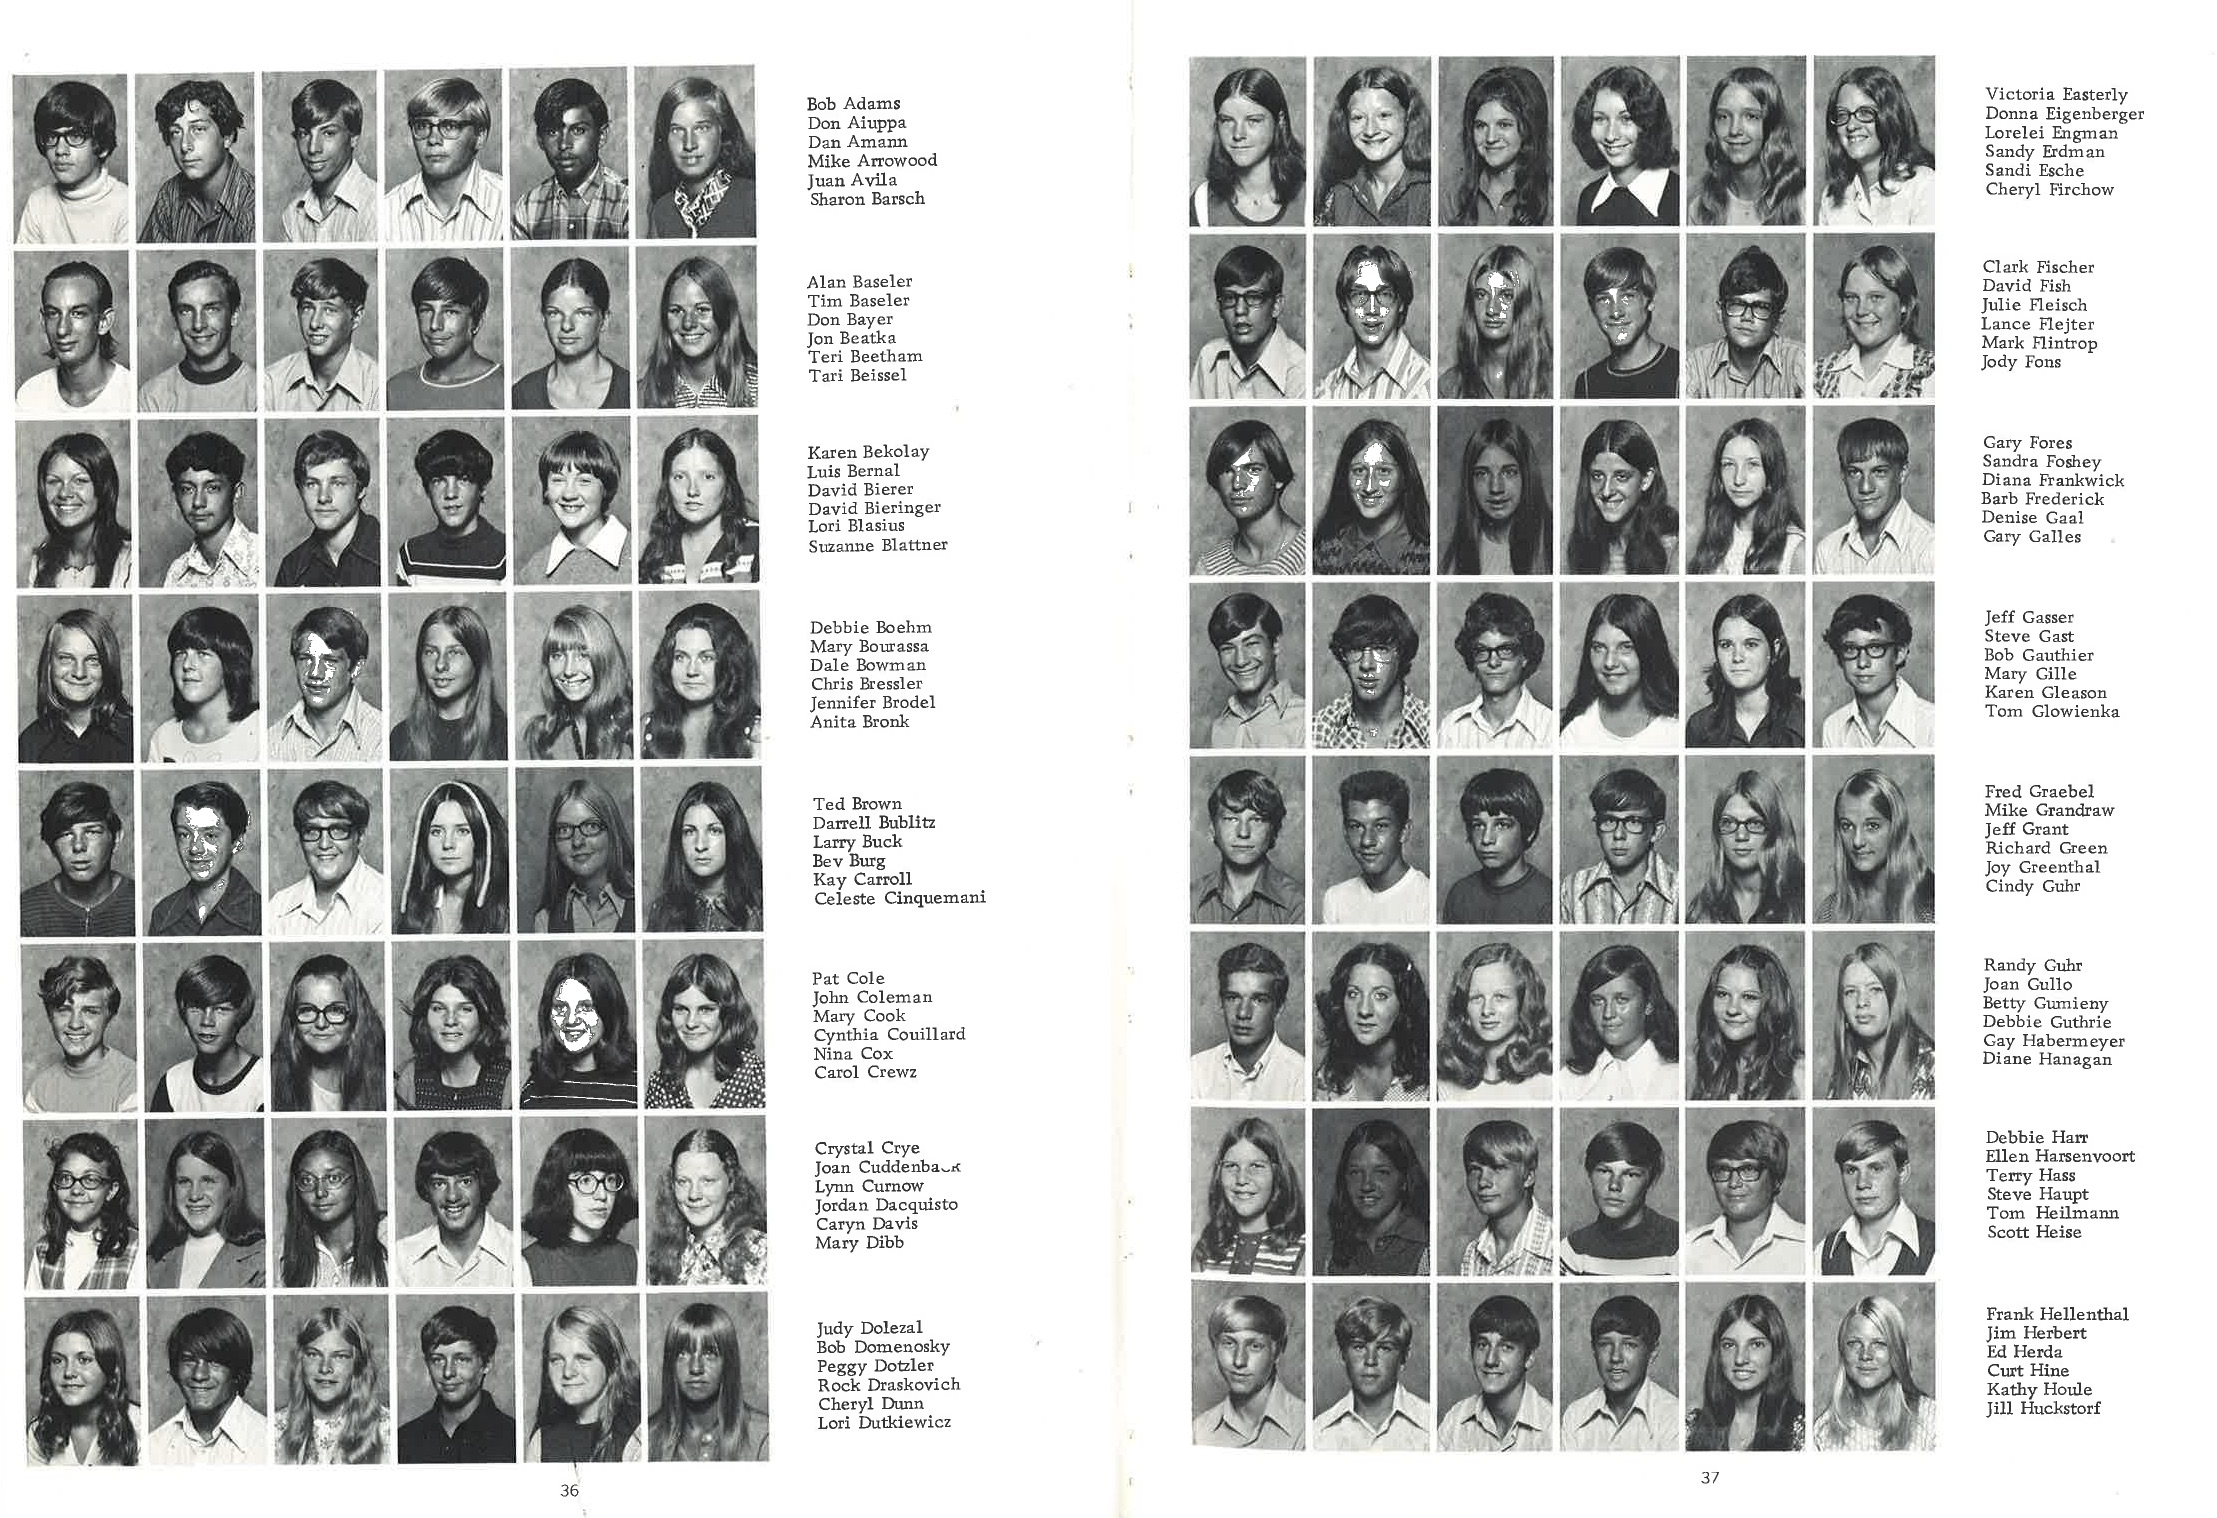 1973_Yearbook_36-37.jpg